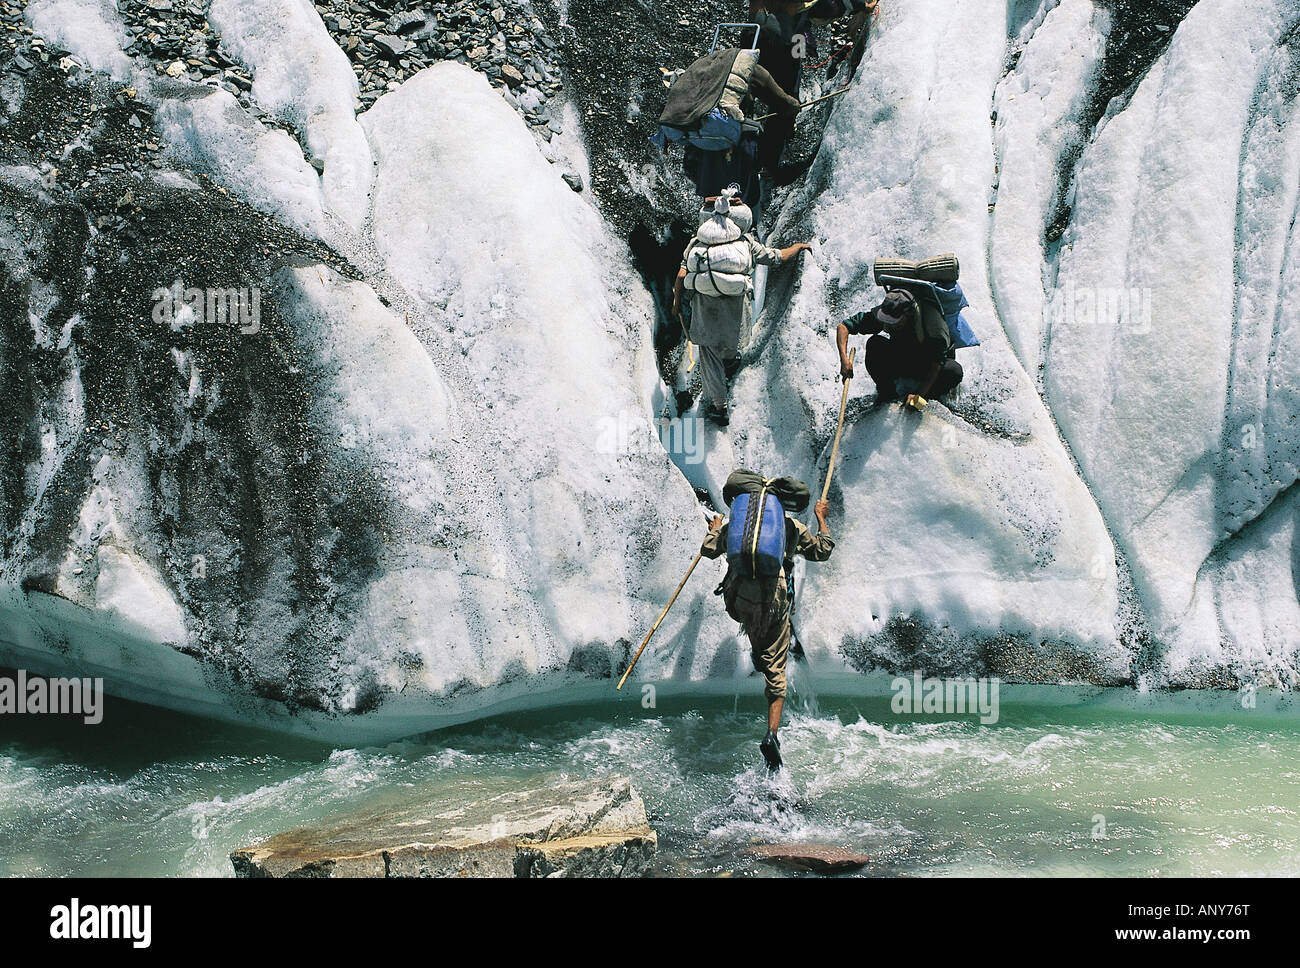 Balti porters climbing in the snow K2 Pakistan - Stock Image